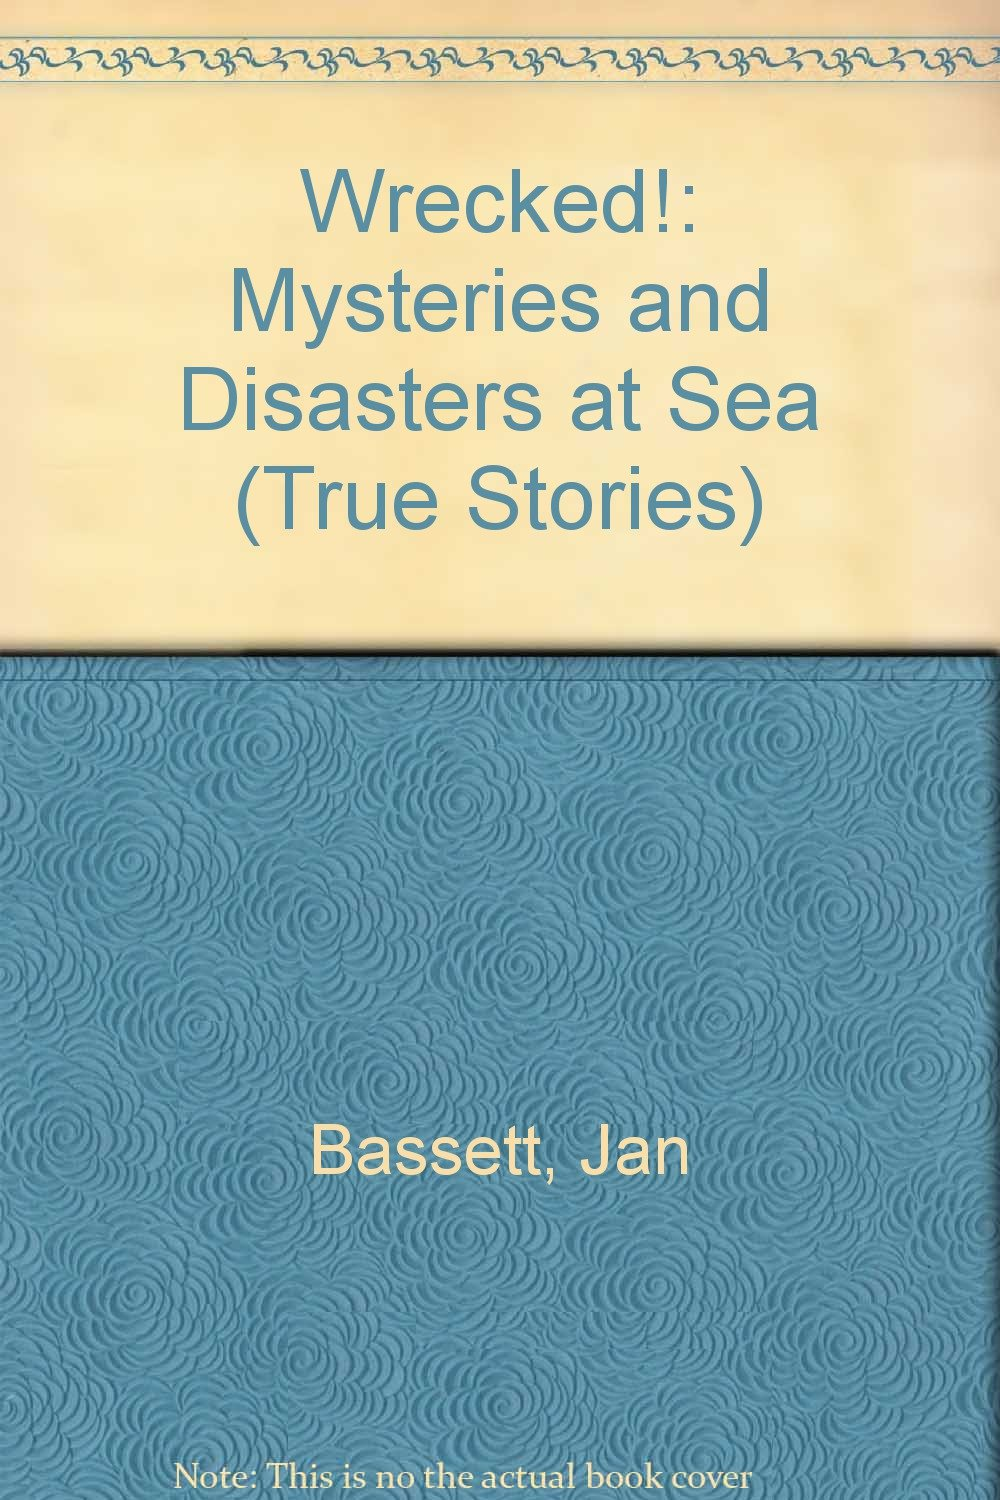 Wrecked!: Mysteries and Disasters at Sea (True Stories)